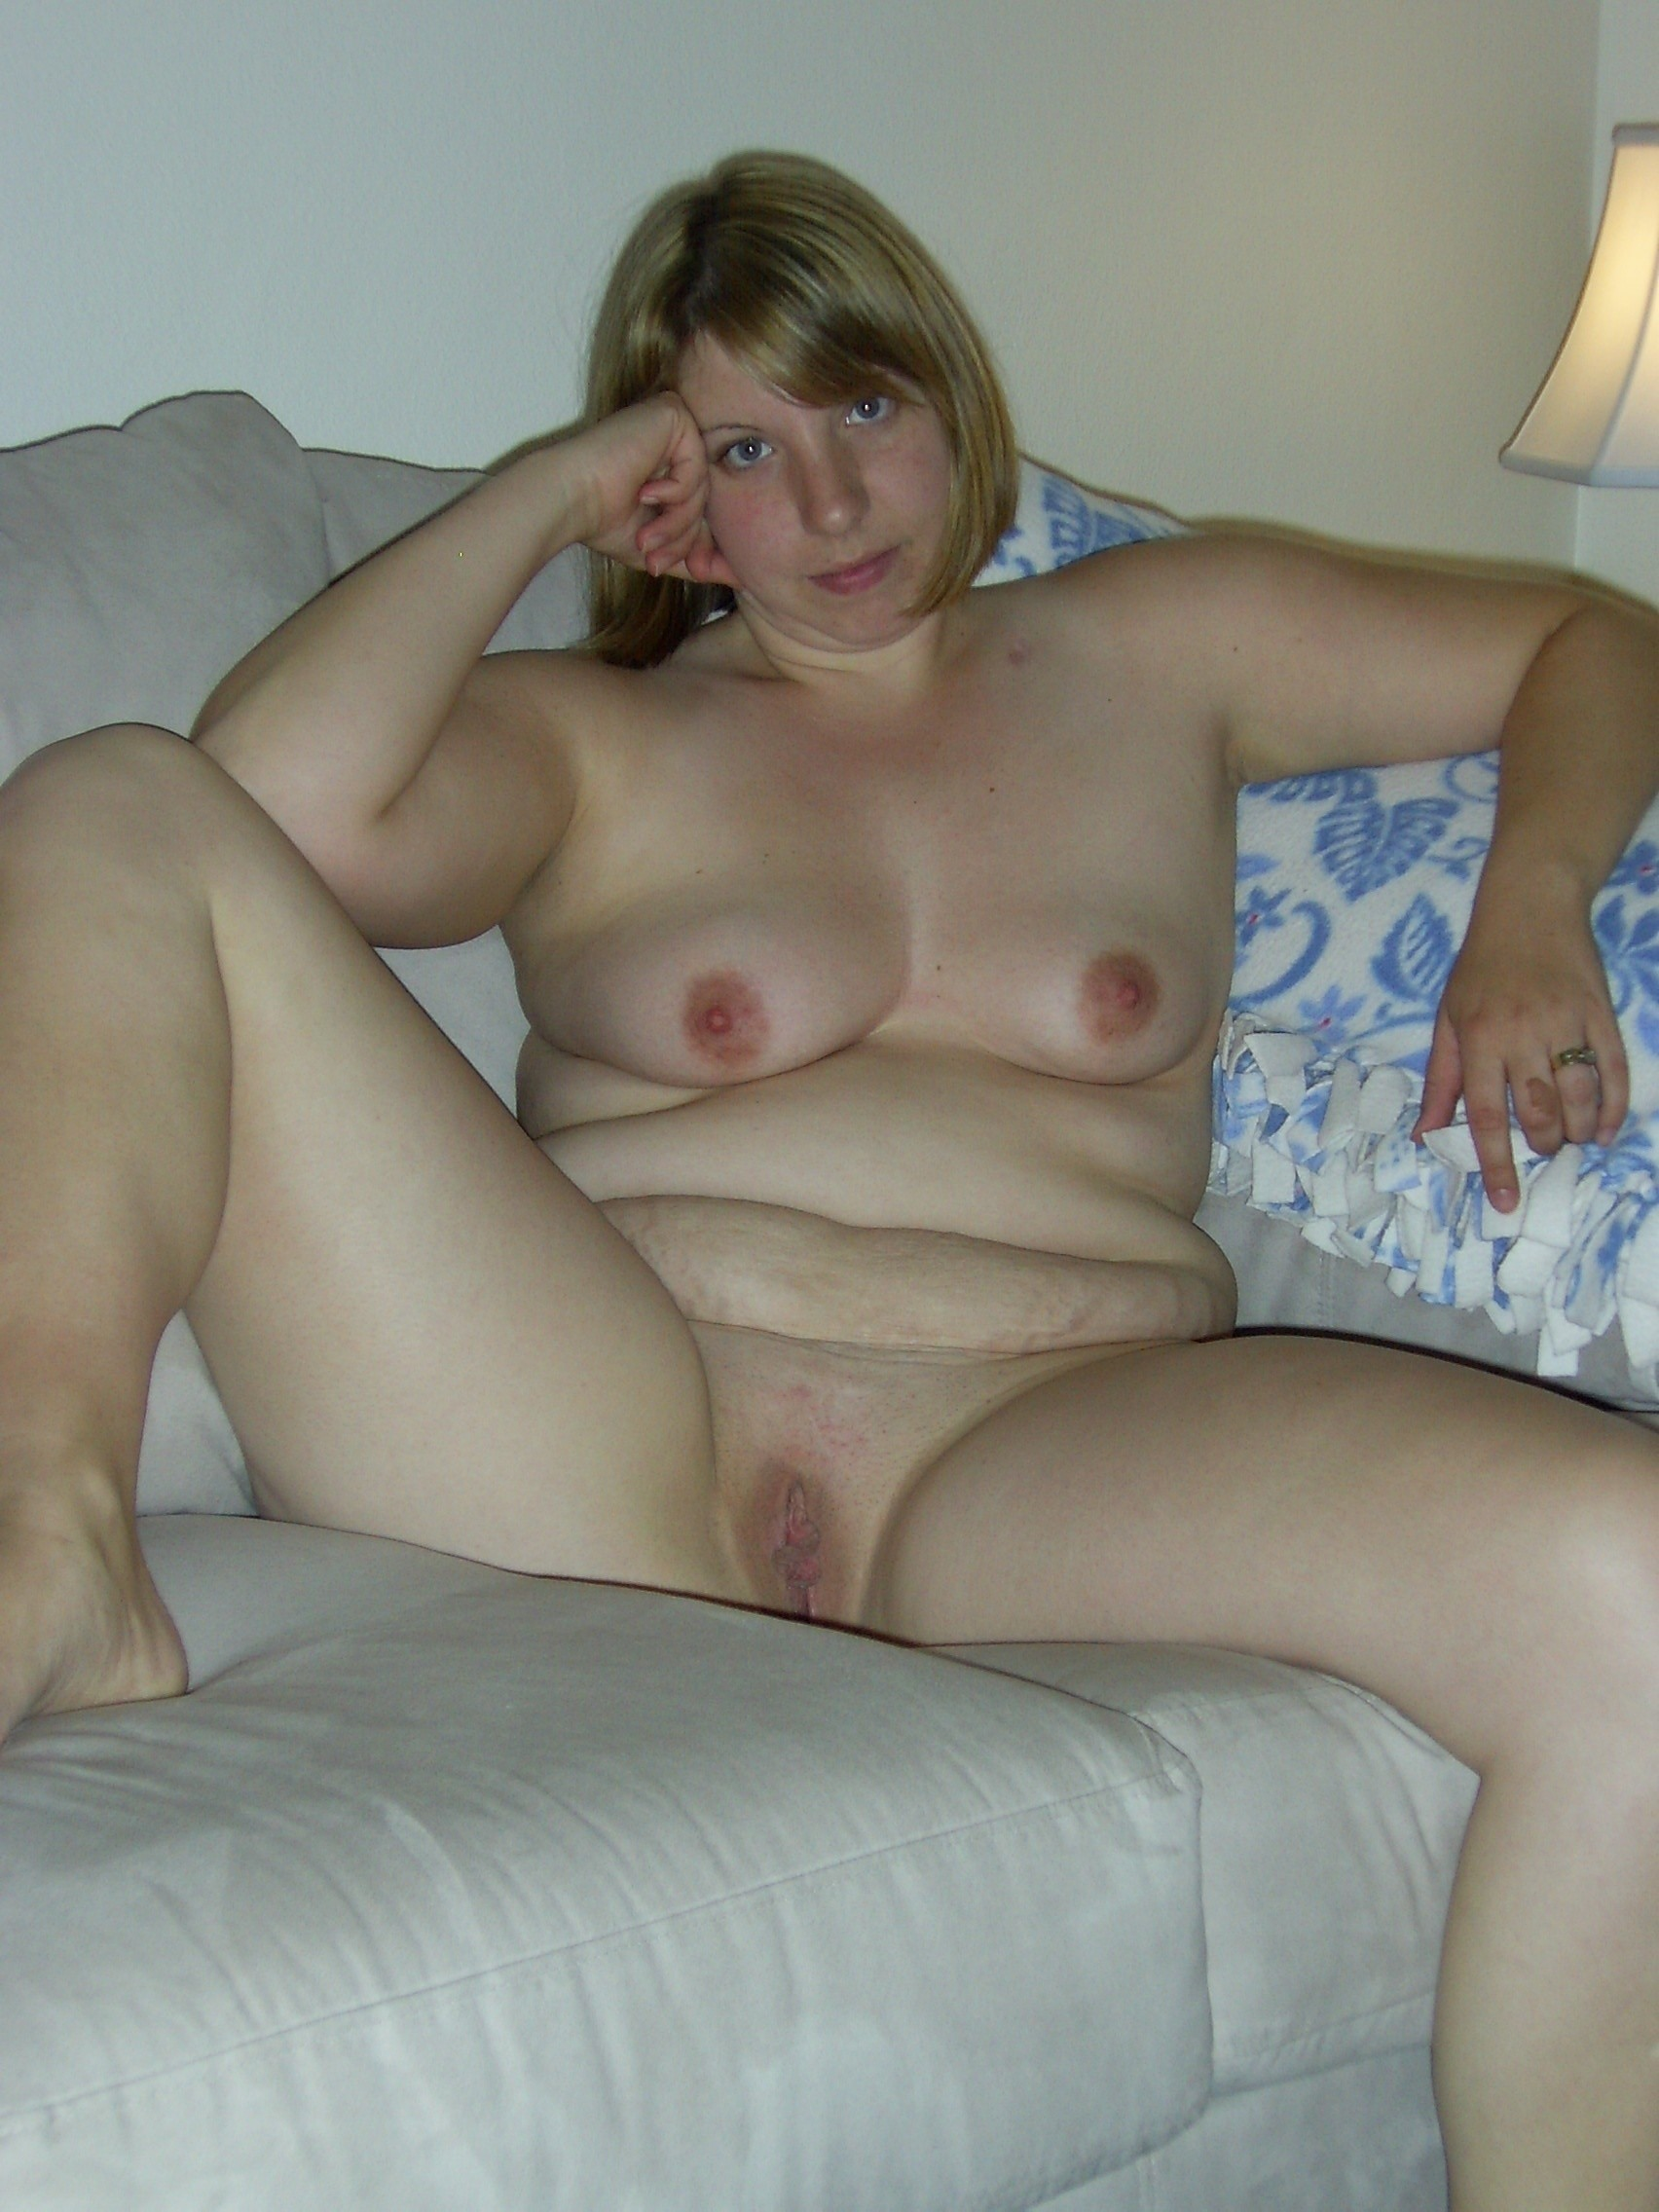 Big and beautiful woman nude